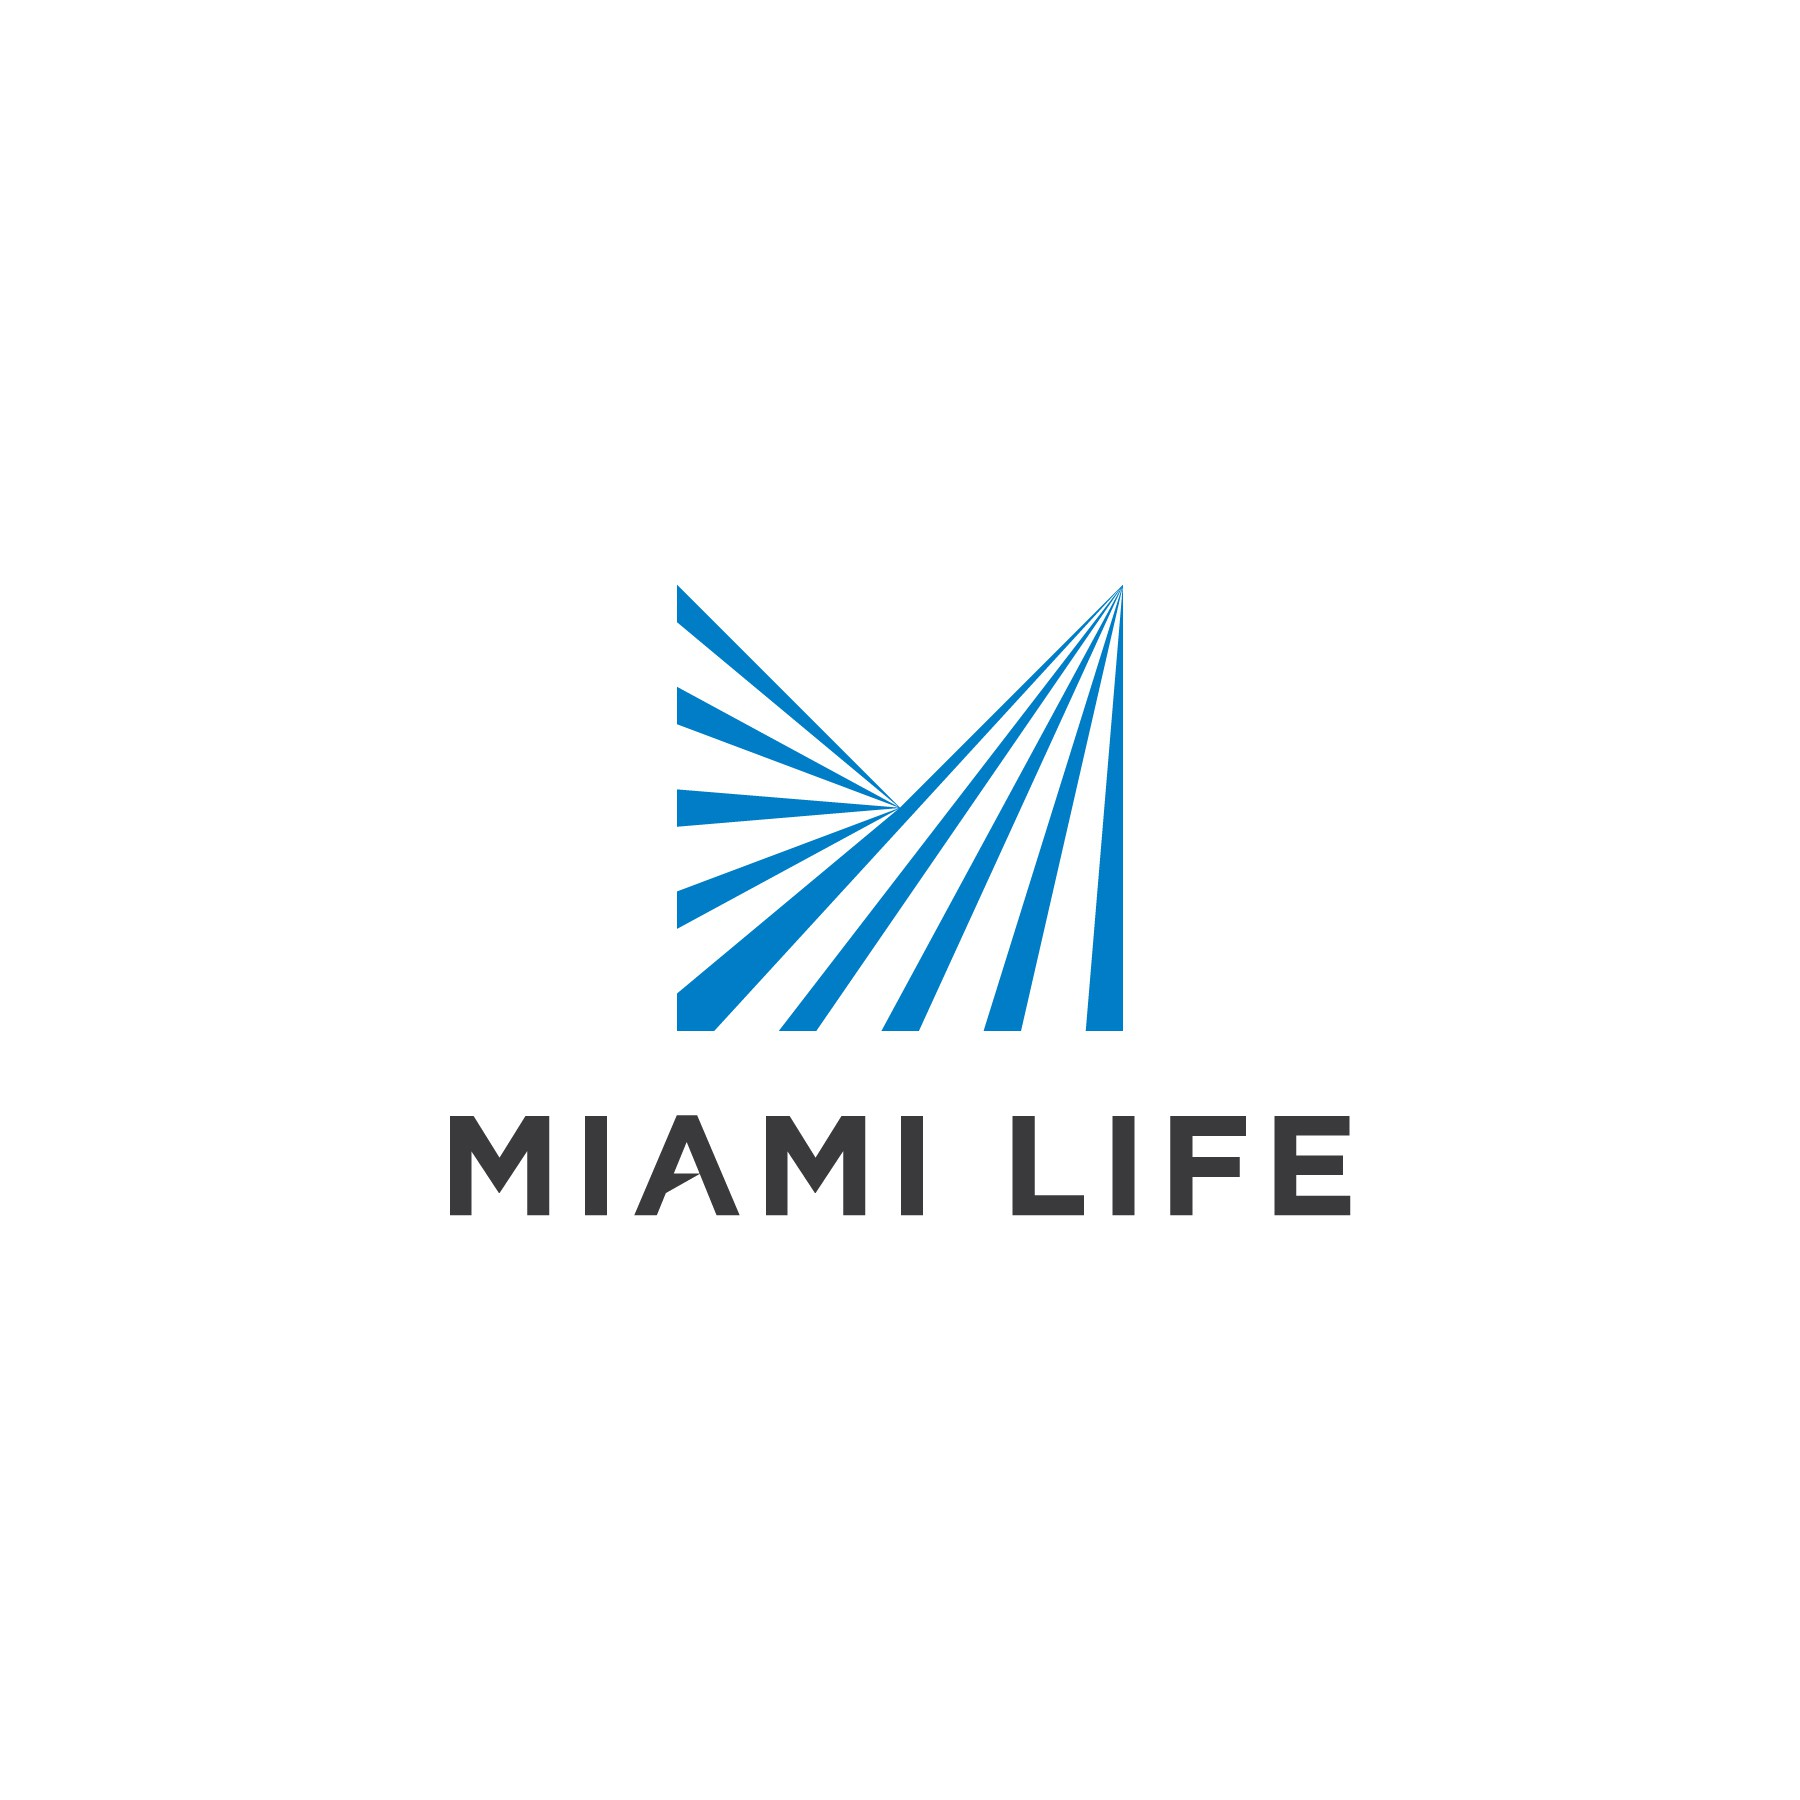 Miami Life - A logo to speak to the world's elite!